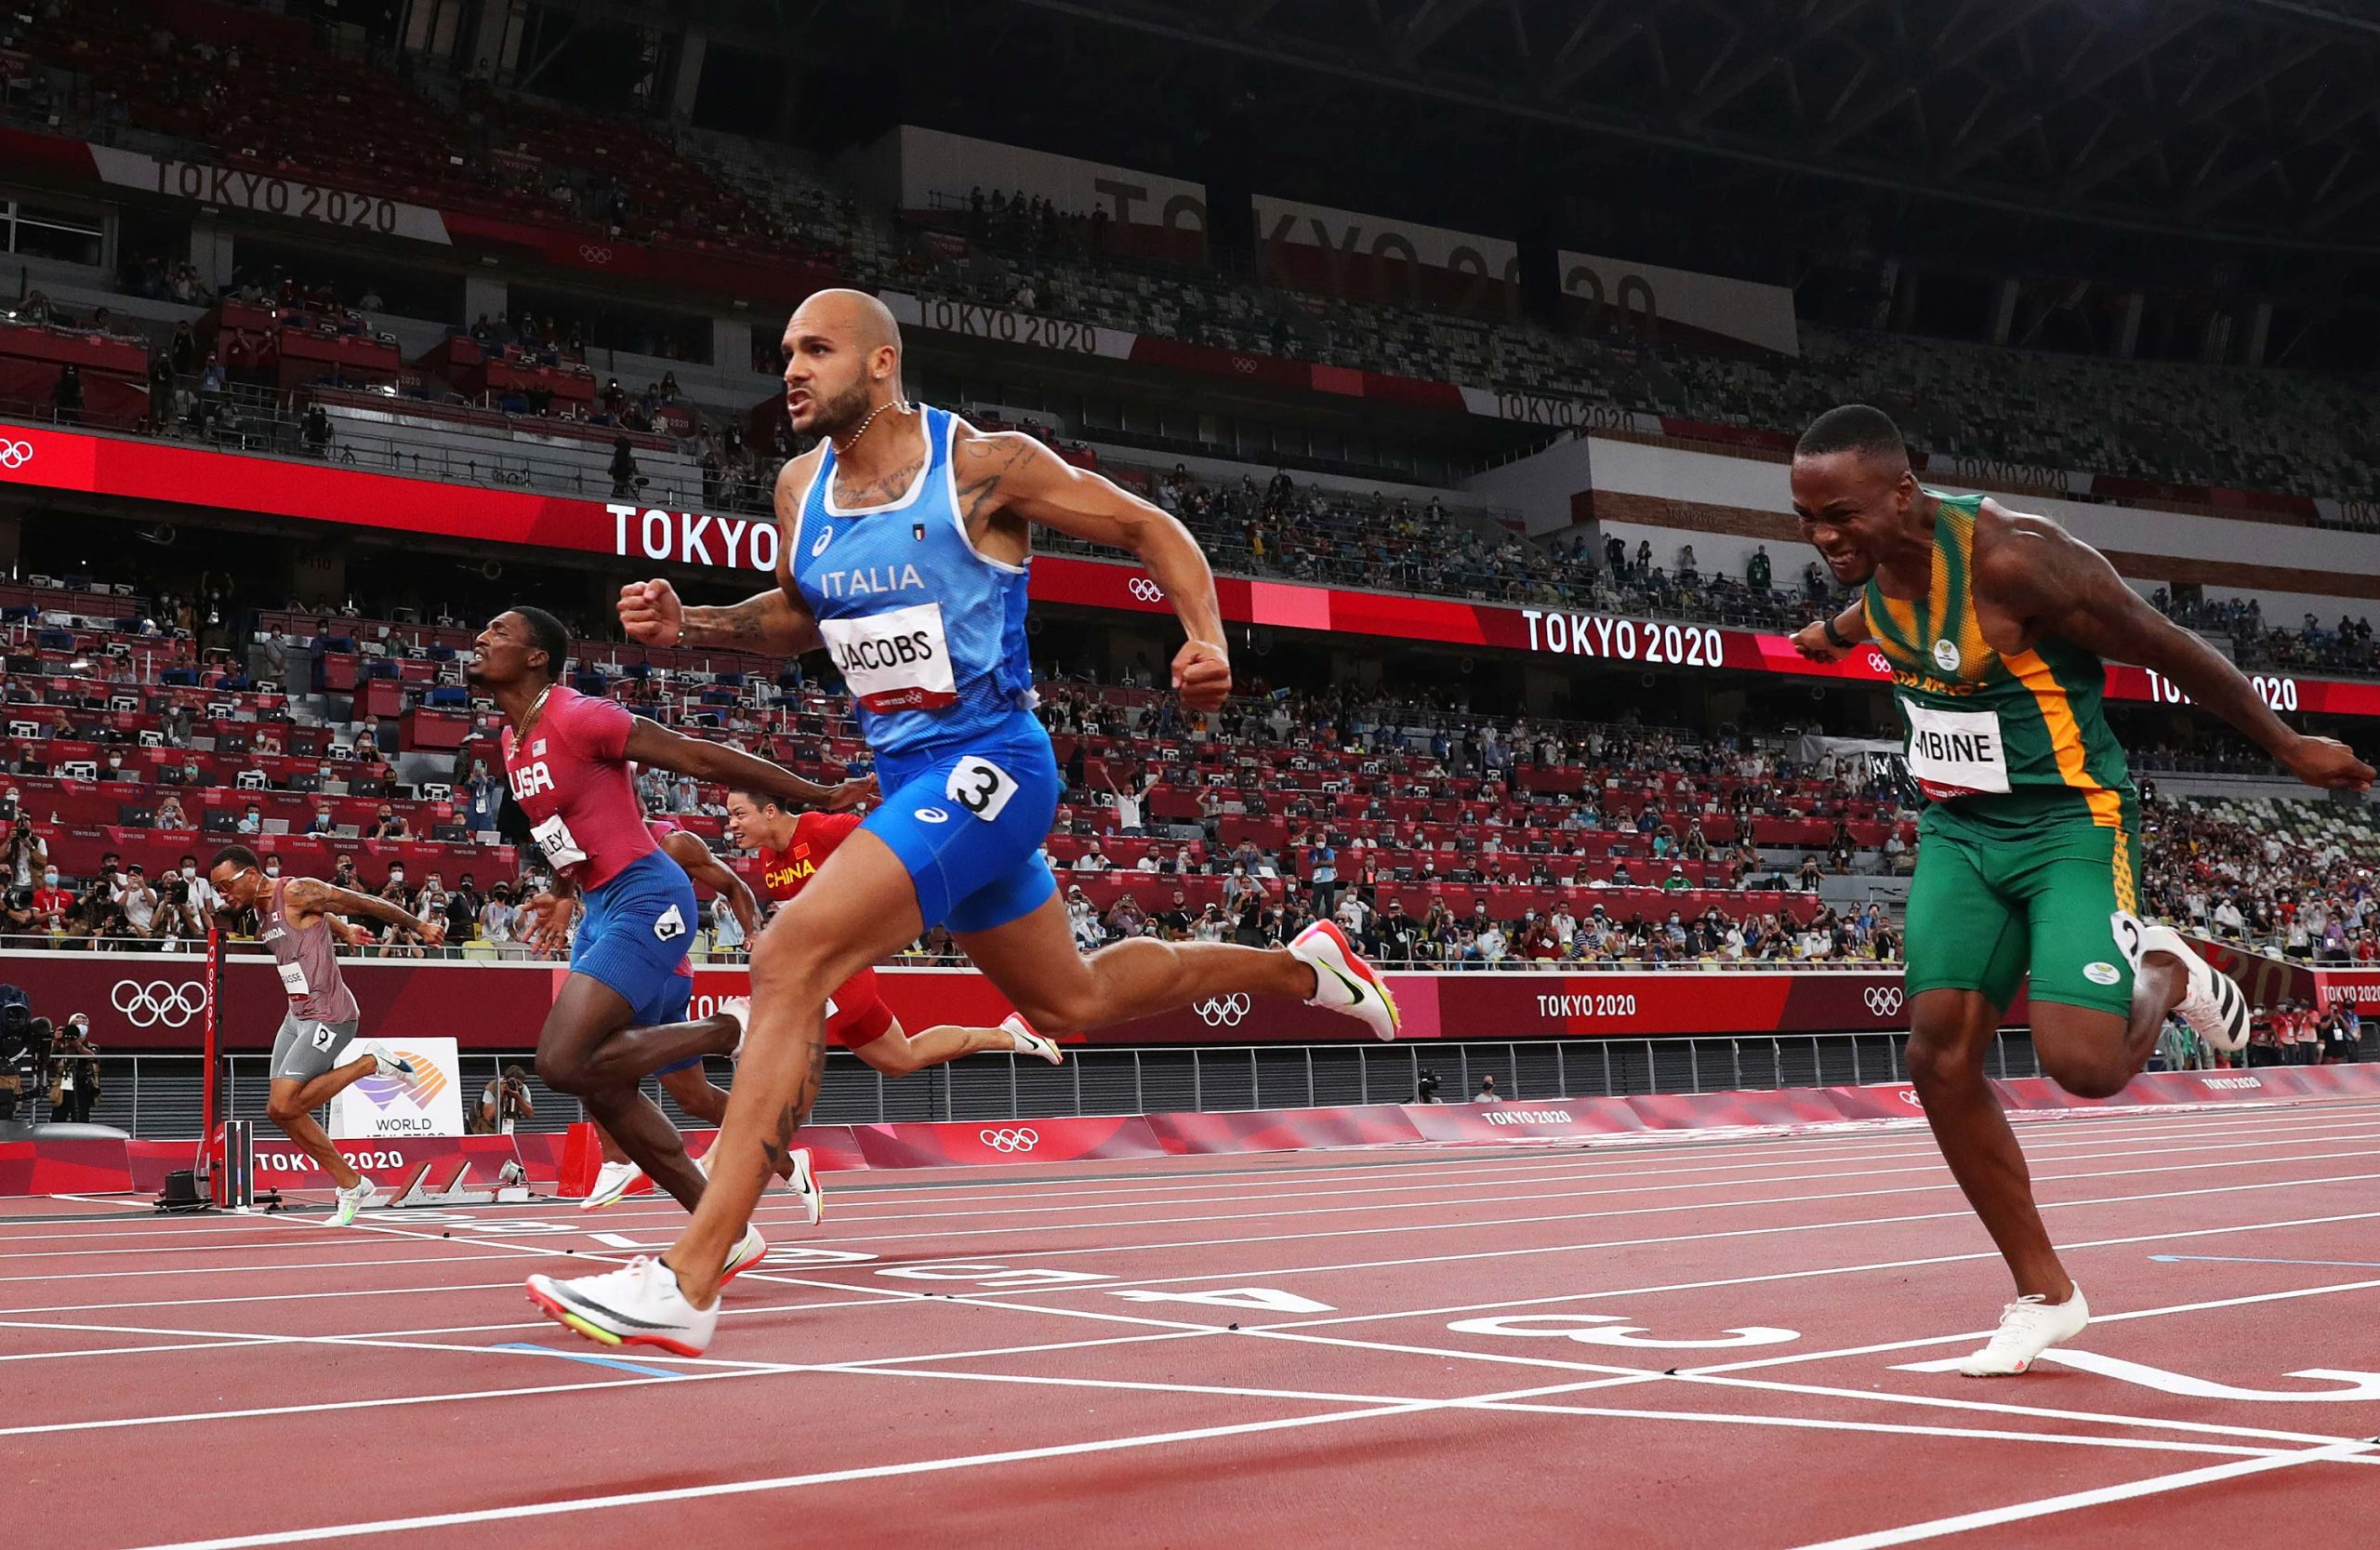 Italy's Lamont Marcell Jacobs wins gold in the men's 100 meter final